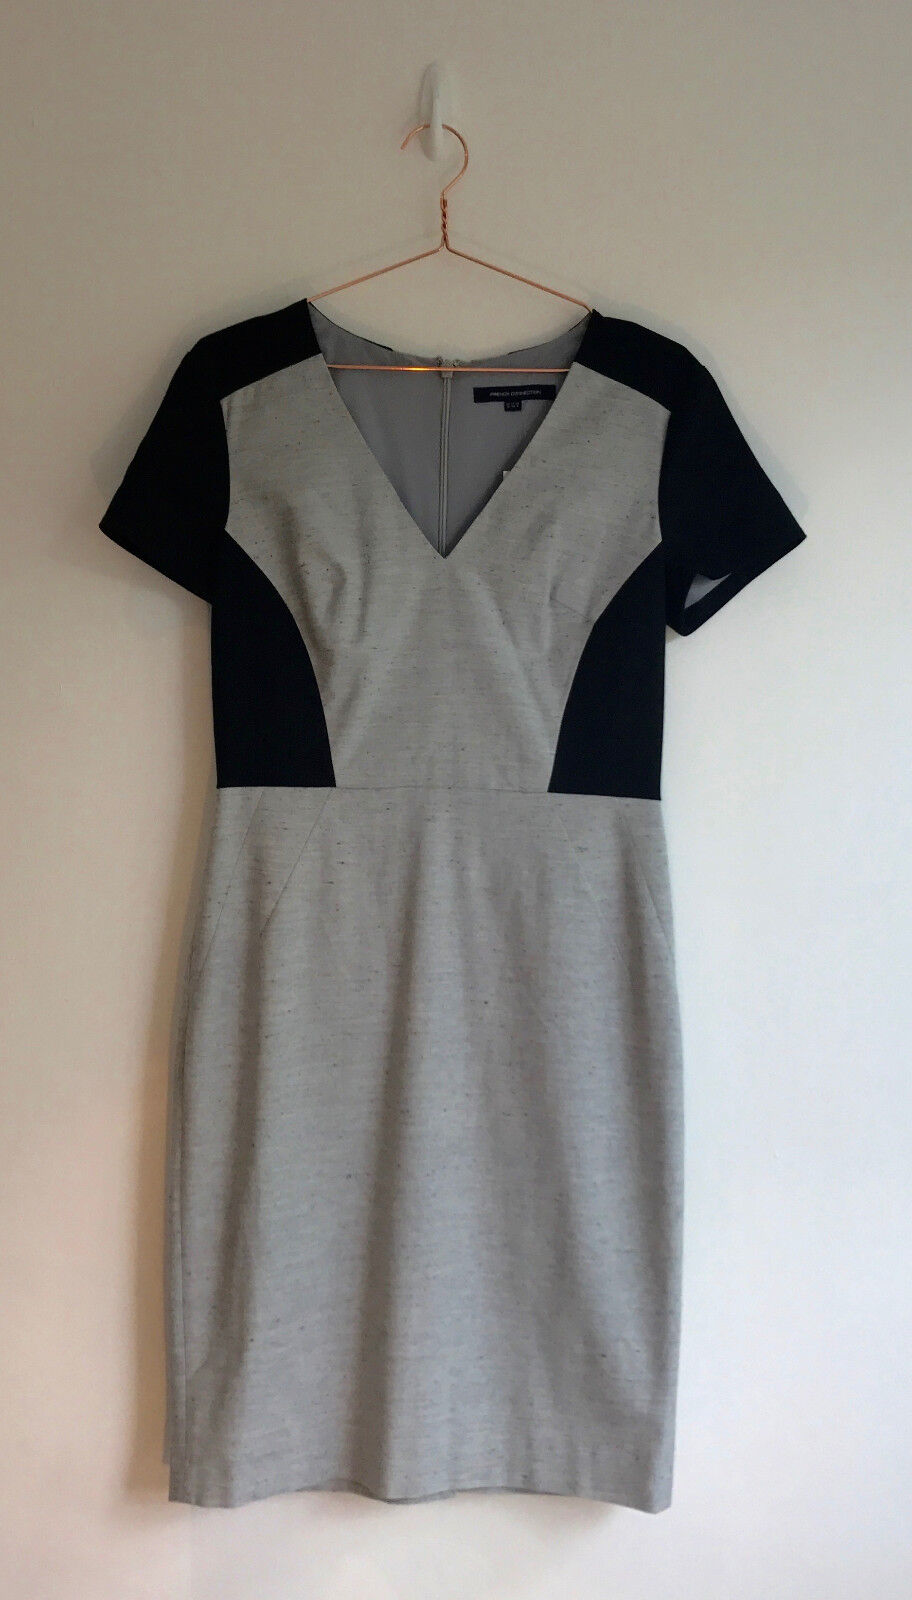 BNWT Ufficio Formale Indossare Body con French French French Connection Sonia Dimensioneur Dress-Taglia 12 6d118d